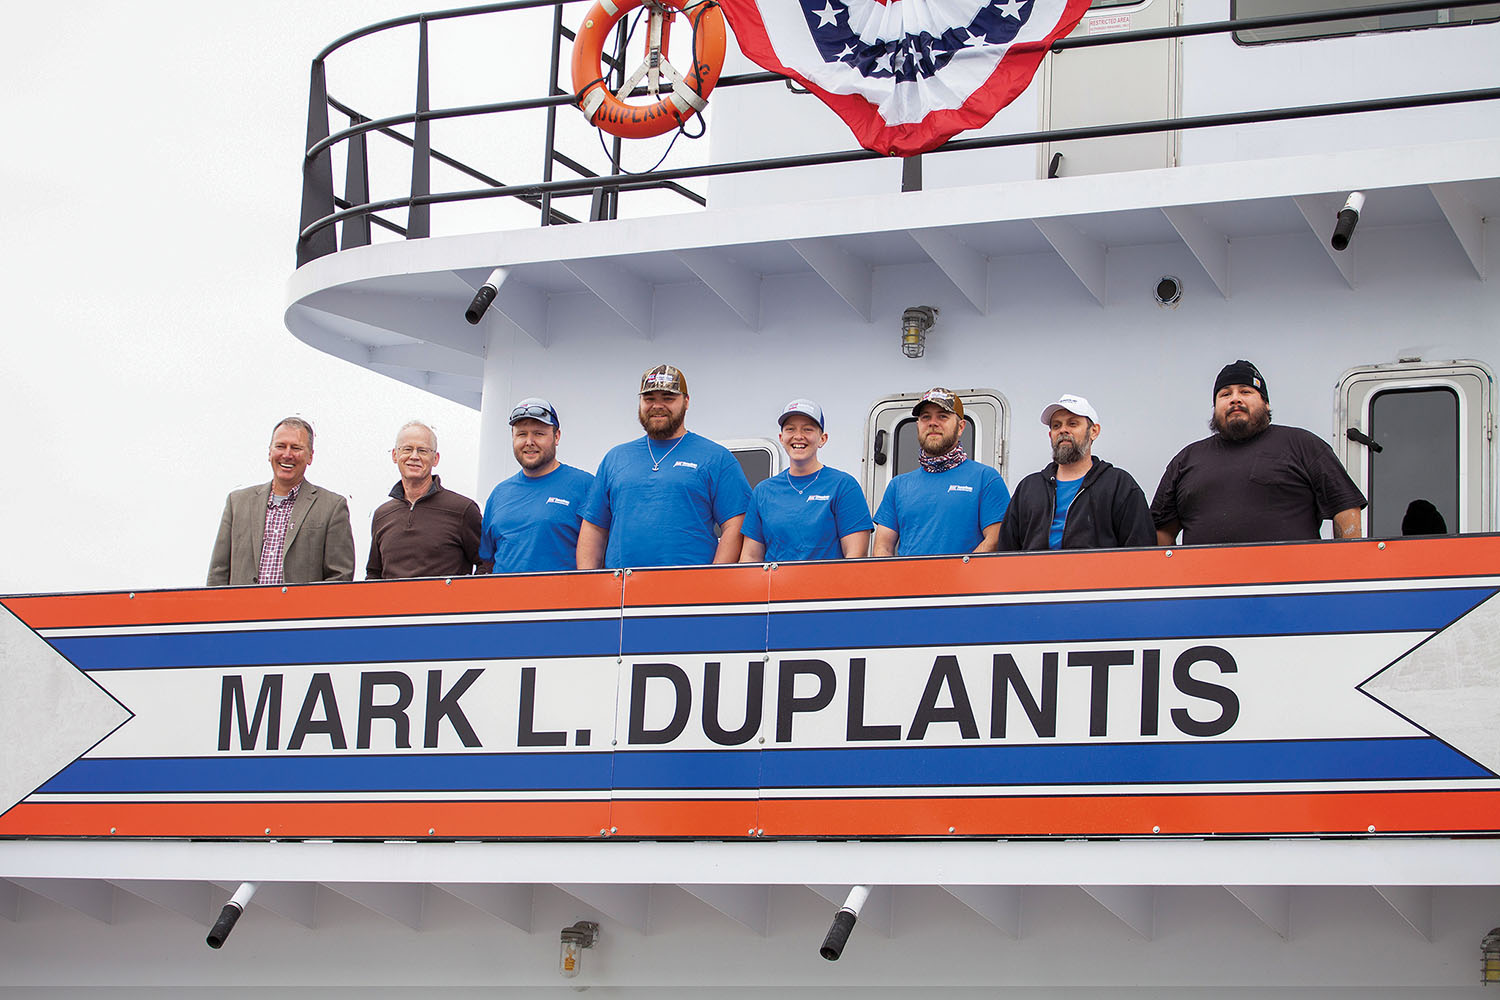 The crew members of the mv. Mark L. Duplantis, from left to right, are Capt. Nathan Basnett; James Johnson, pilot; lead deckhand Stephen Morgan; deckhands Devon Gauthreaux and Melissa Schneller; Jarod Gordon, mate; Jeremy Mayes, cook; and Chief Engineer Robert Ahdosy. (Photo by Frank McCormack)